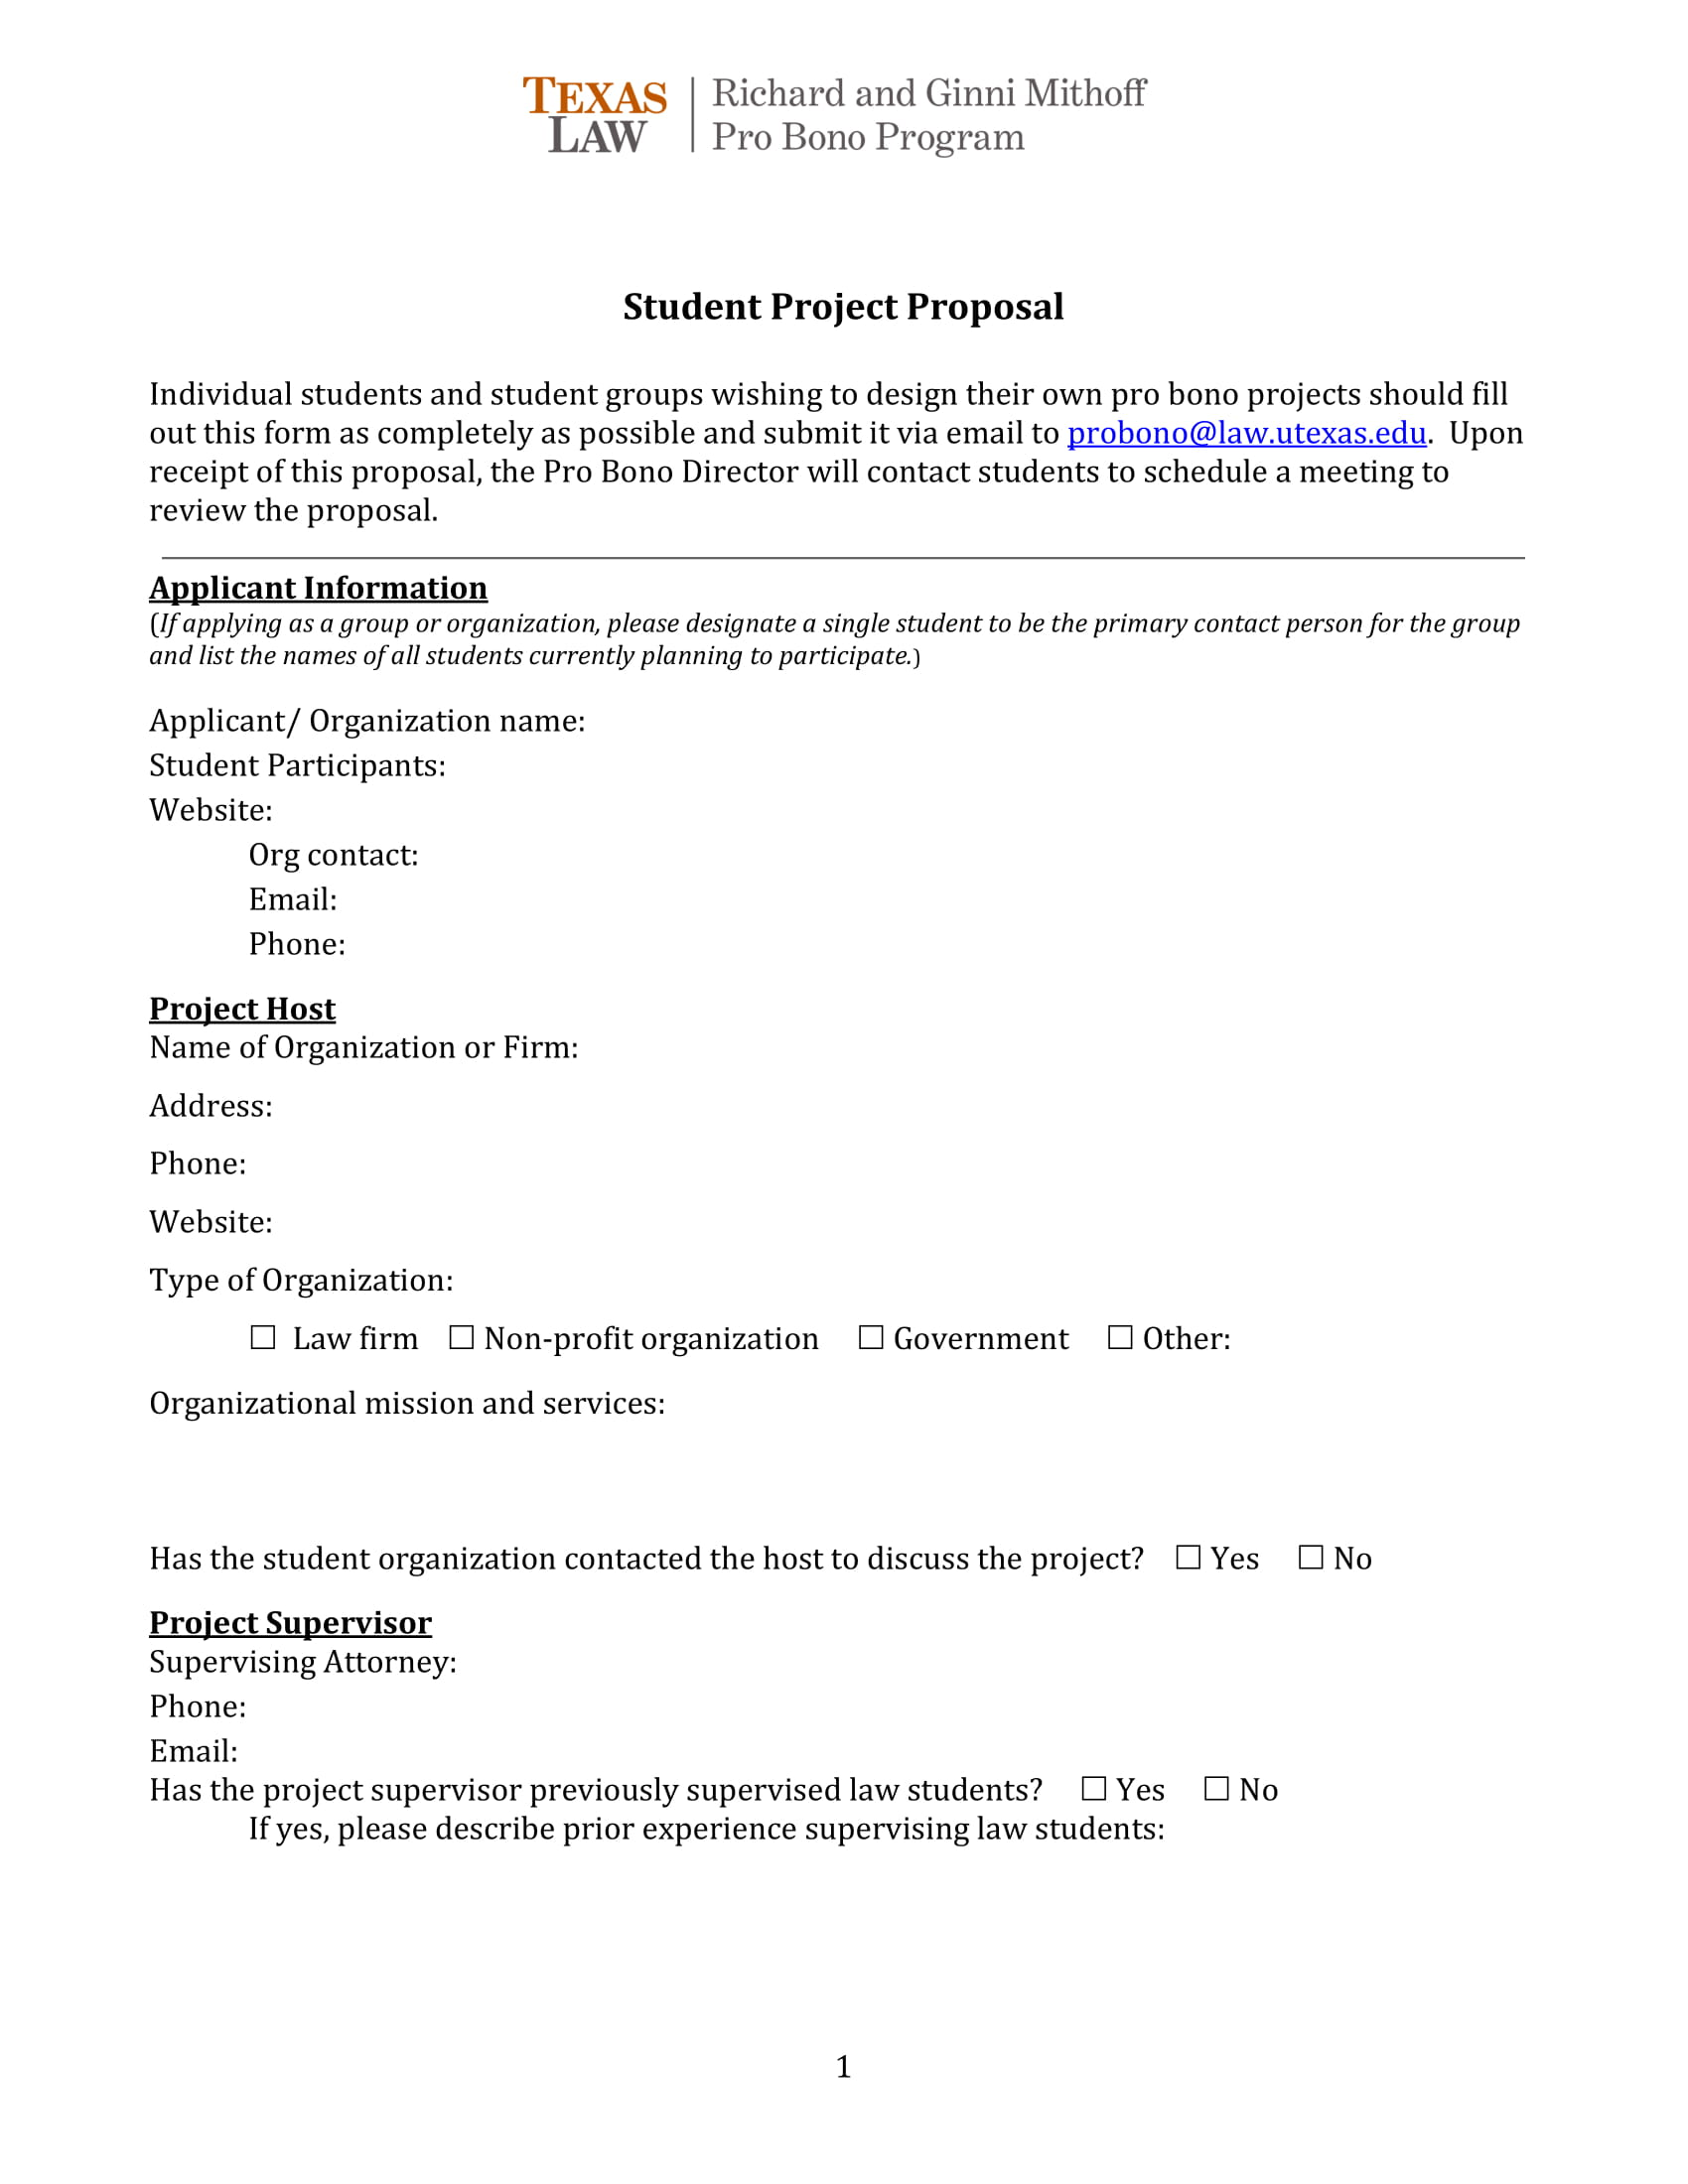 basic student project proposal example 1